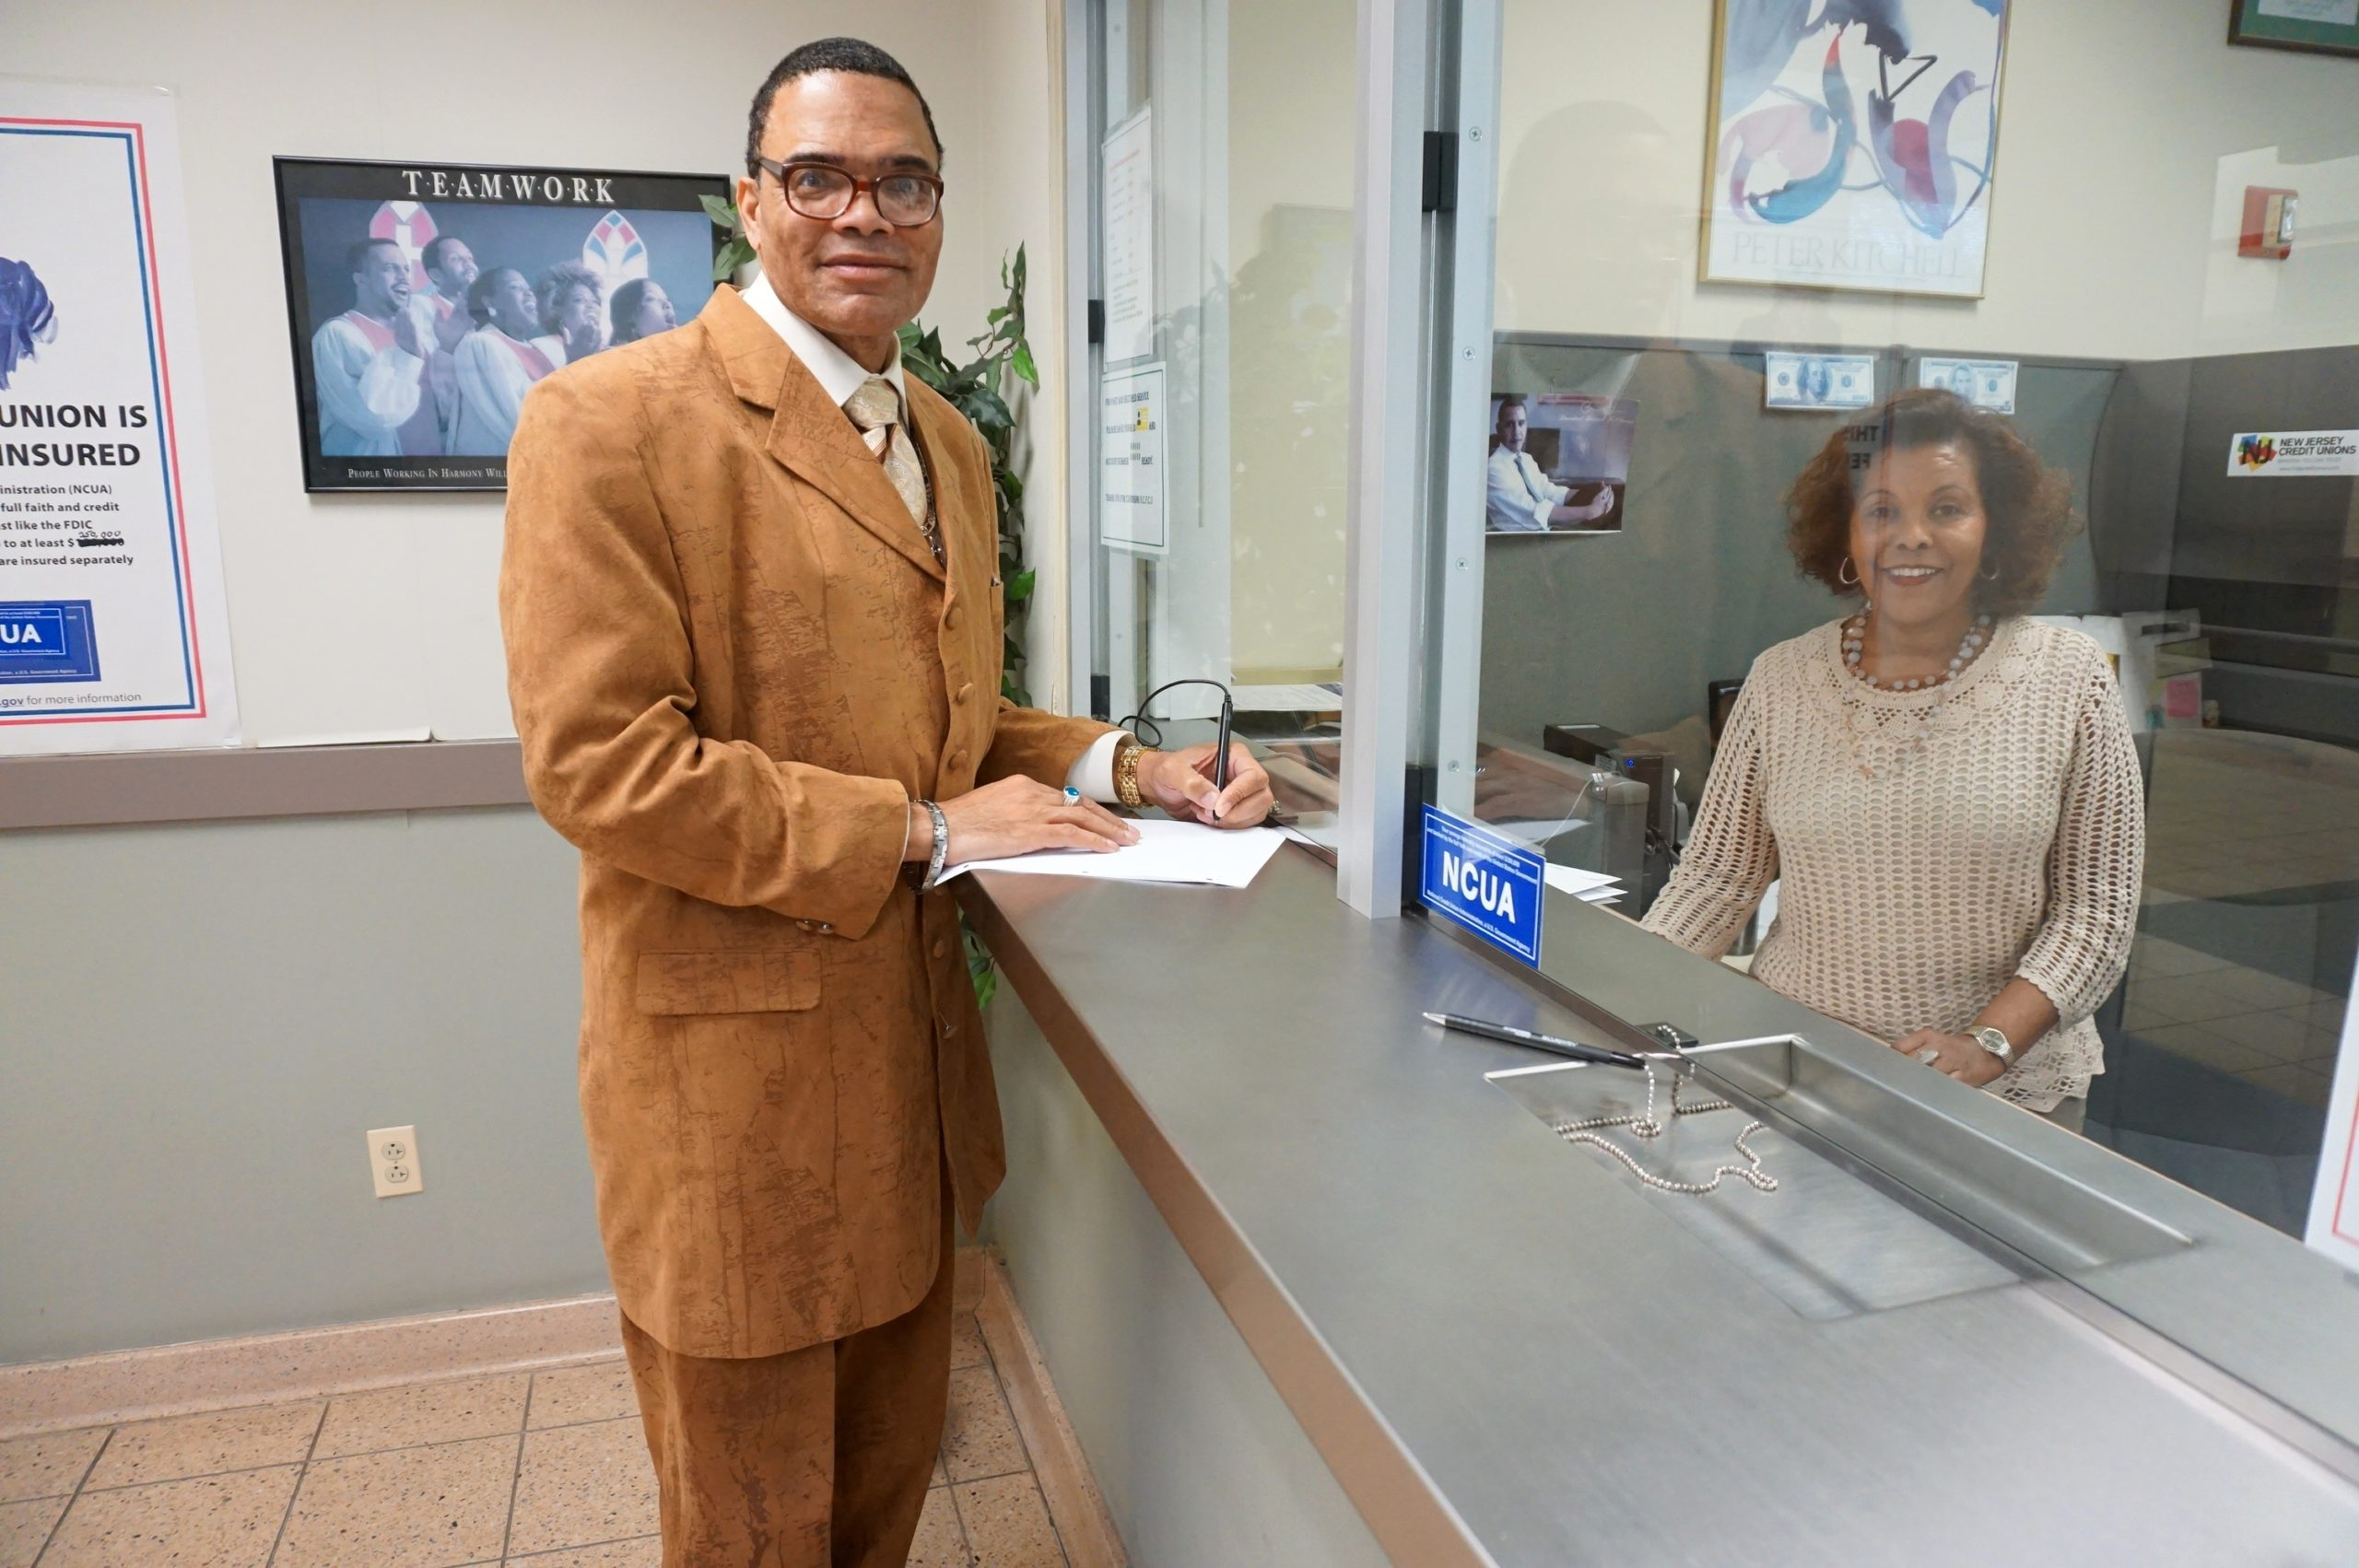 Credit Union Member Helps Others After Overcoming Struggles